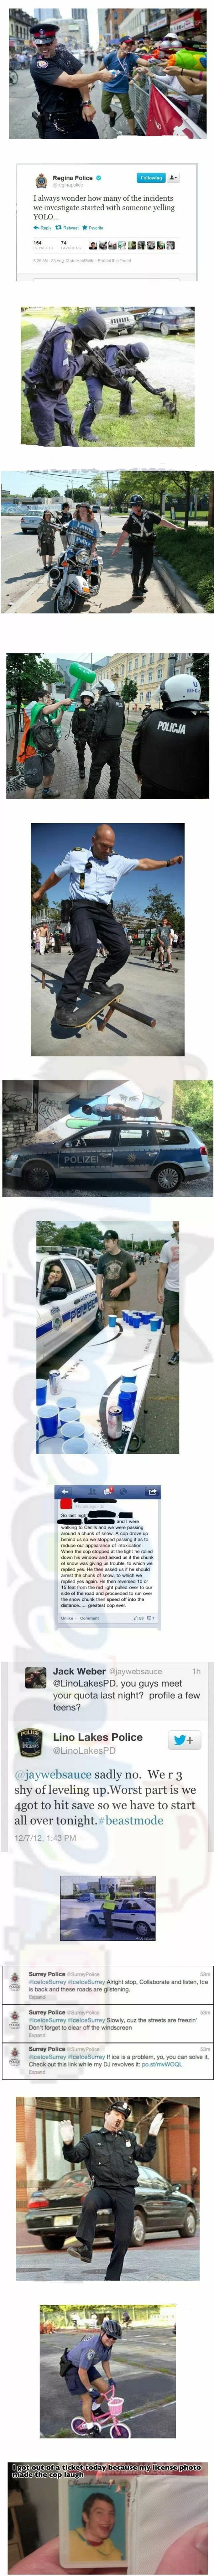 Pure awesome...best cops ever